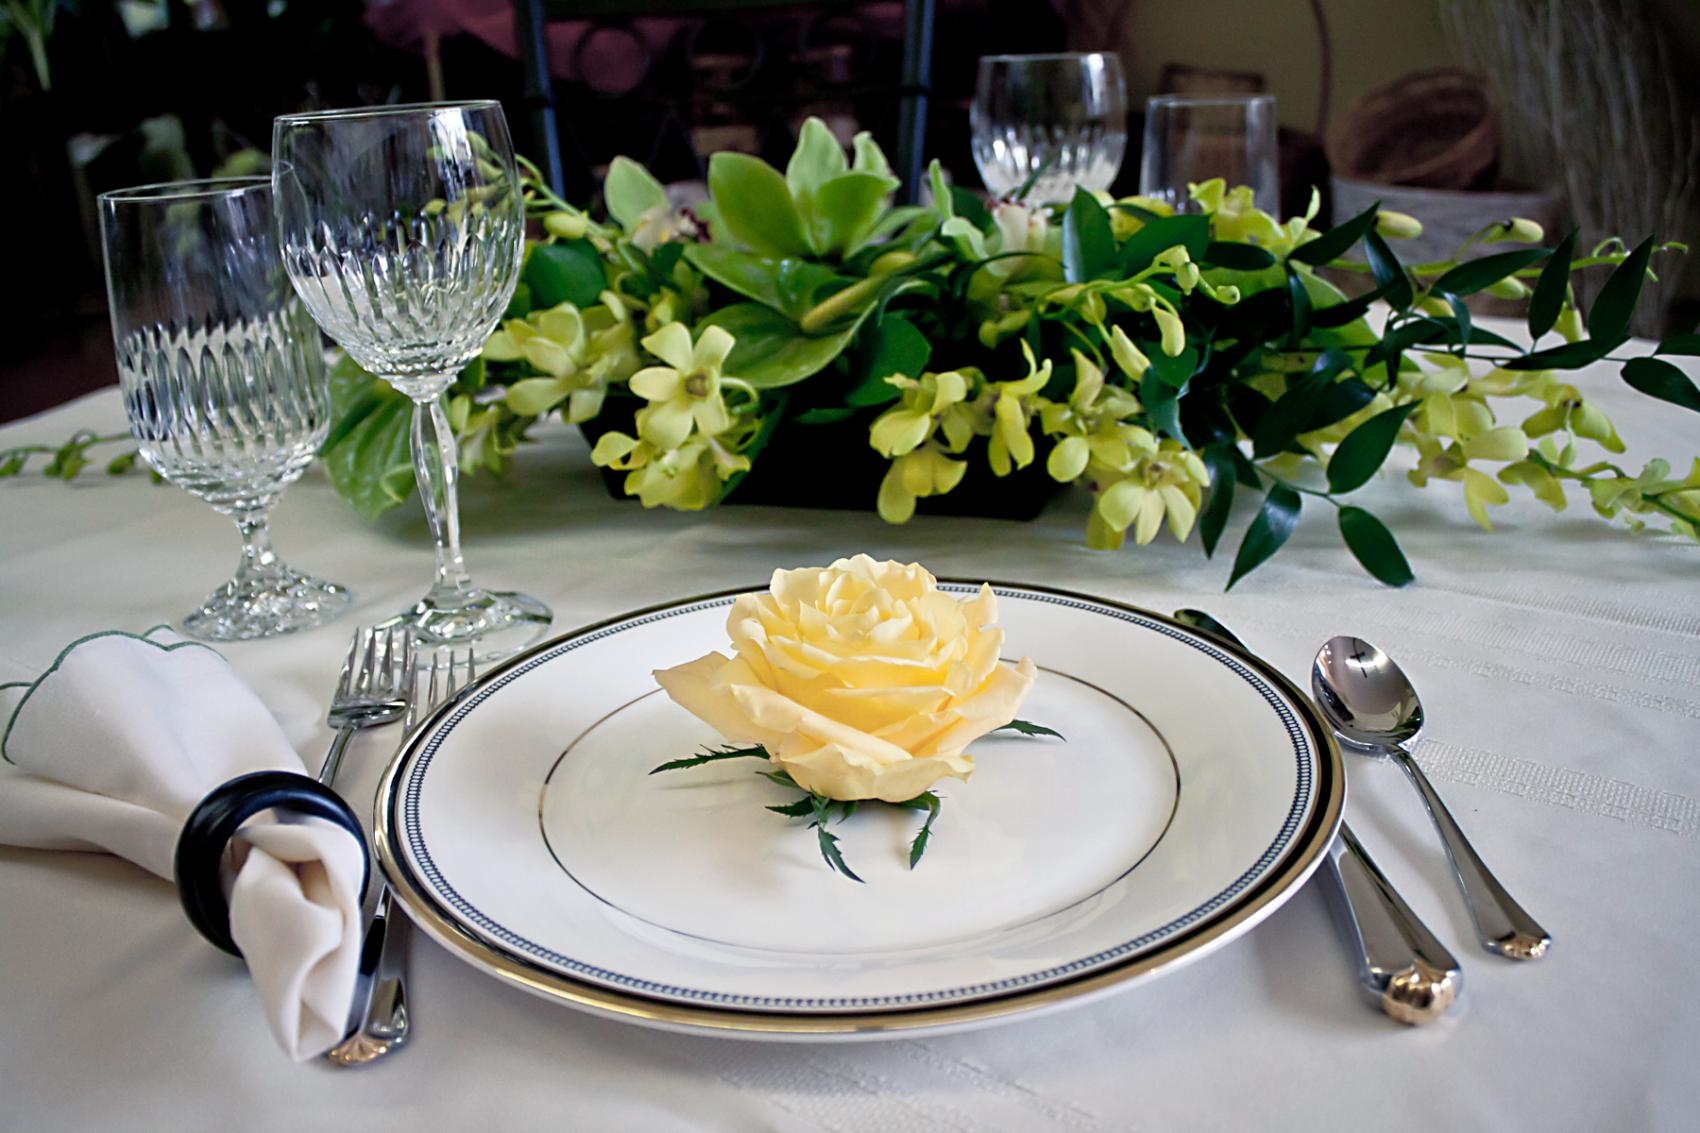 table setting with yellow rose